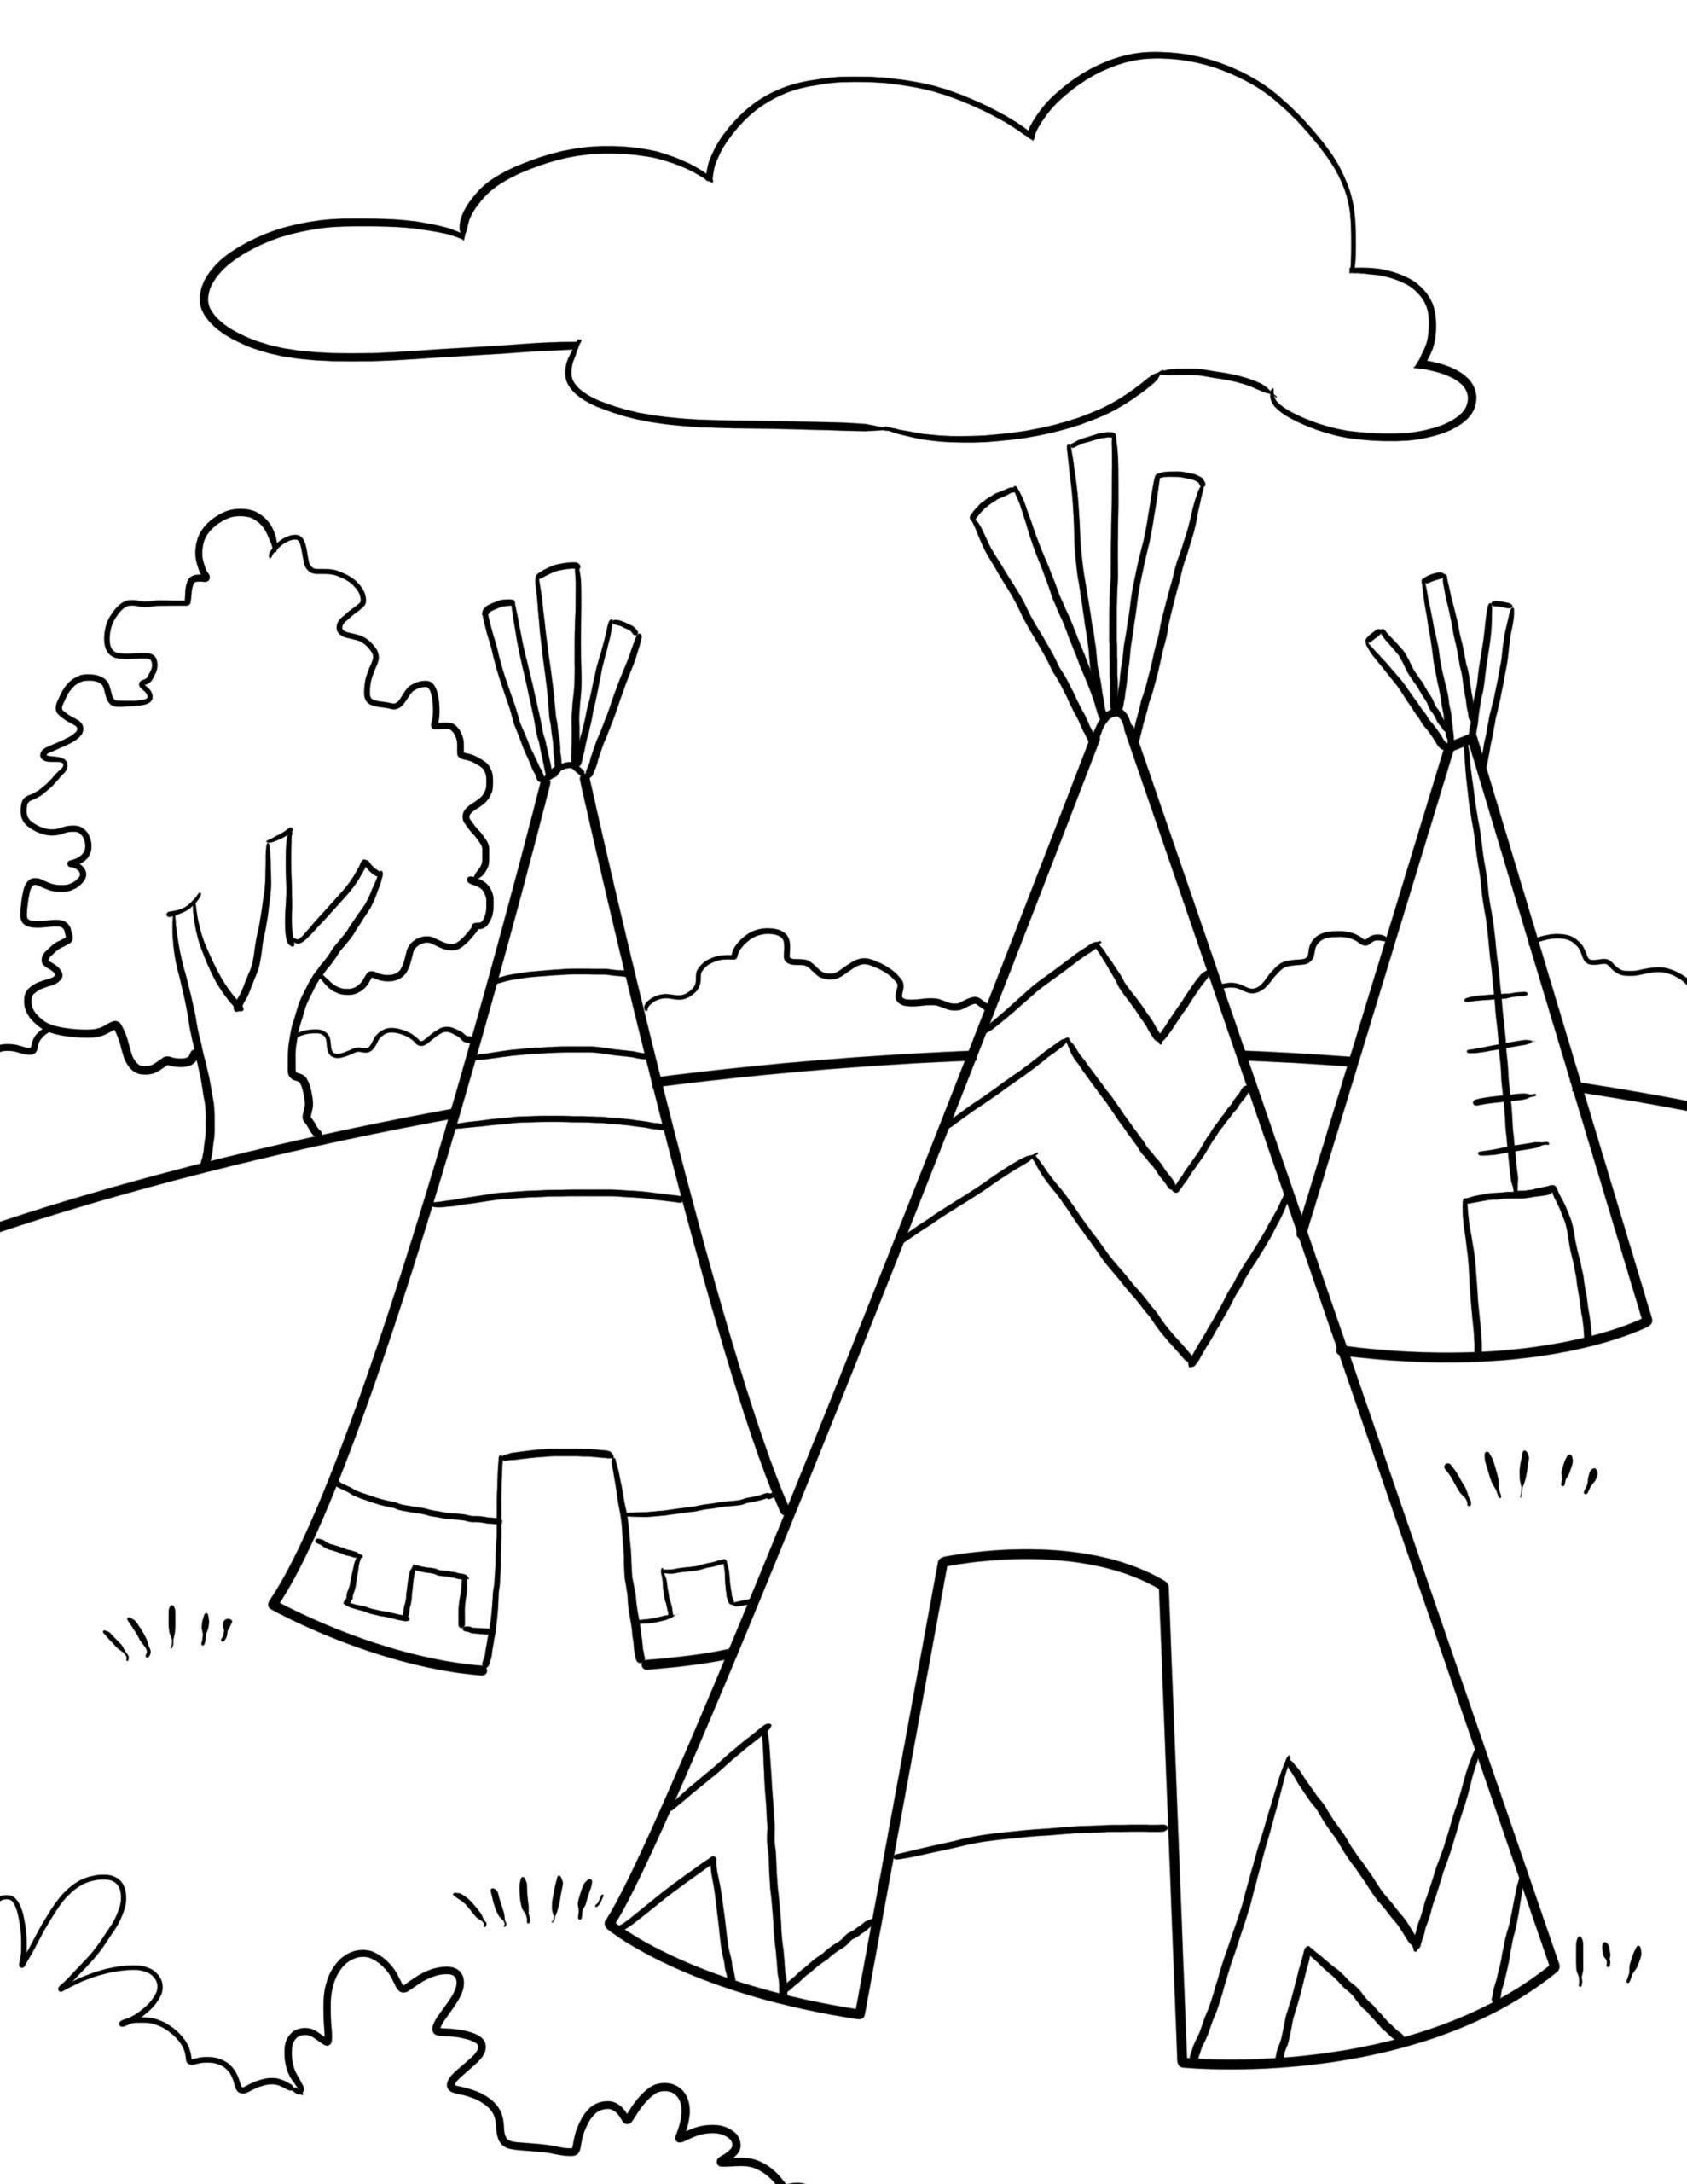 Native American Math Worksheets School Worksheets Math